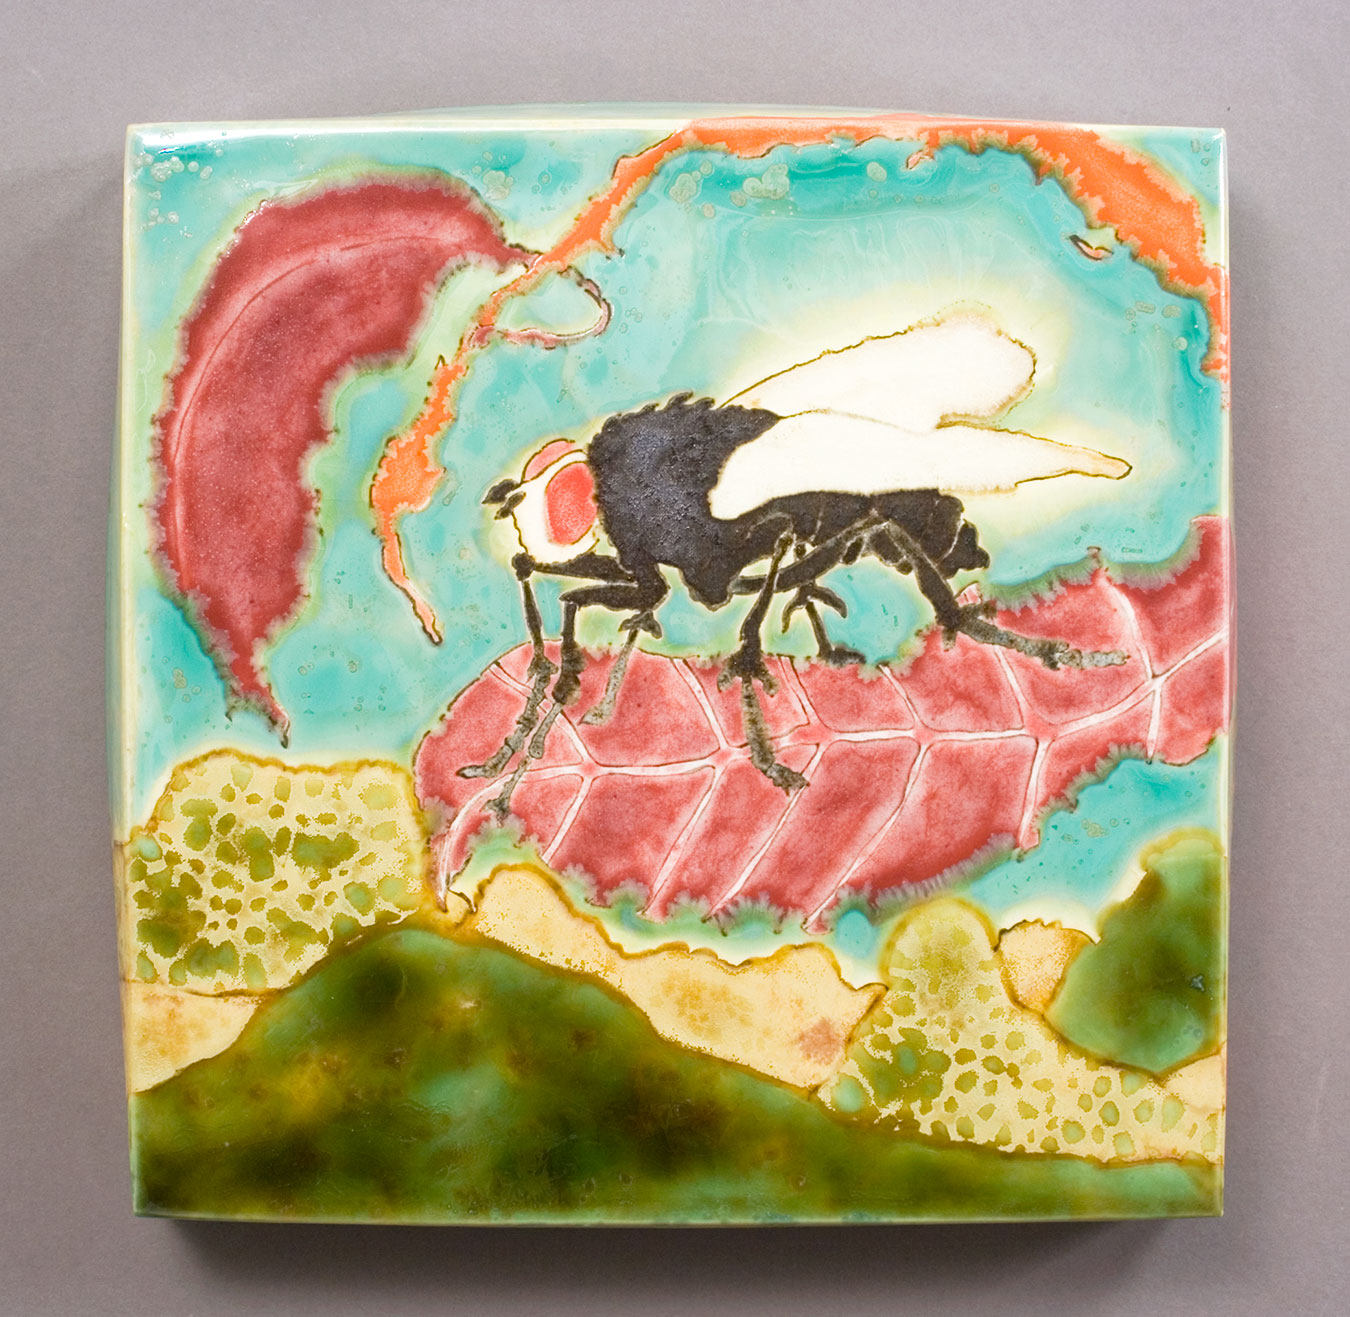 Red-Eye-Fly-Ceramic-Art-Glaze-Painting-Samantha-Henneke.jpg